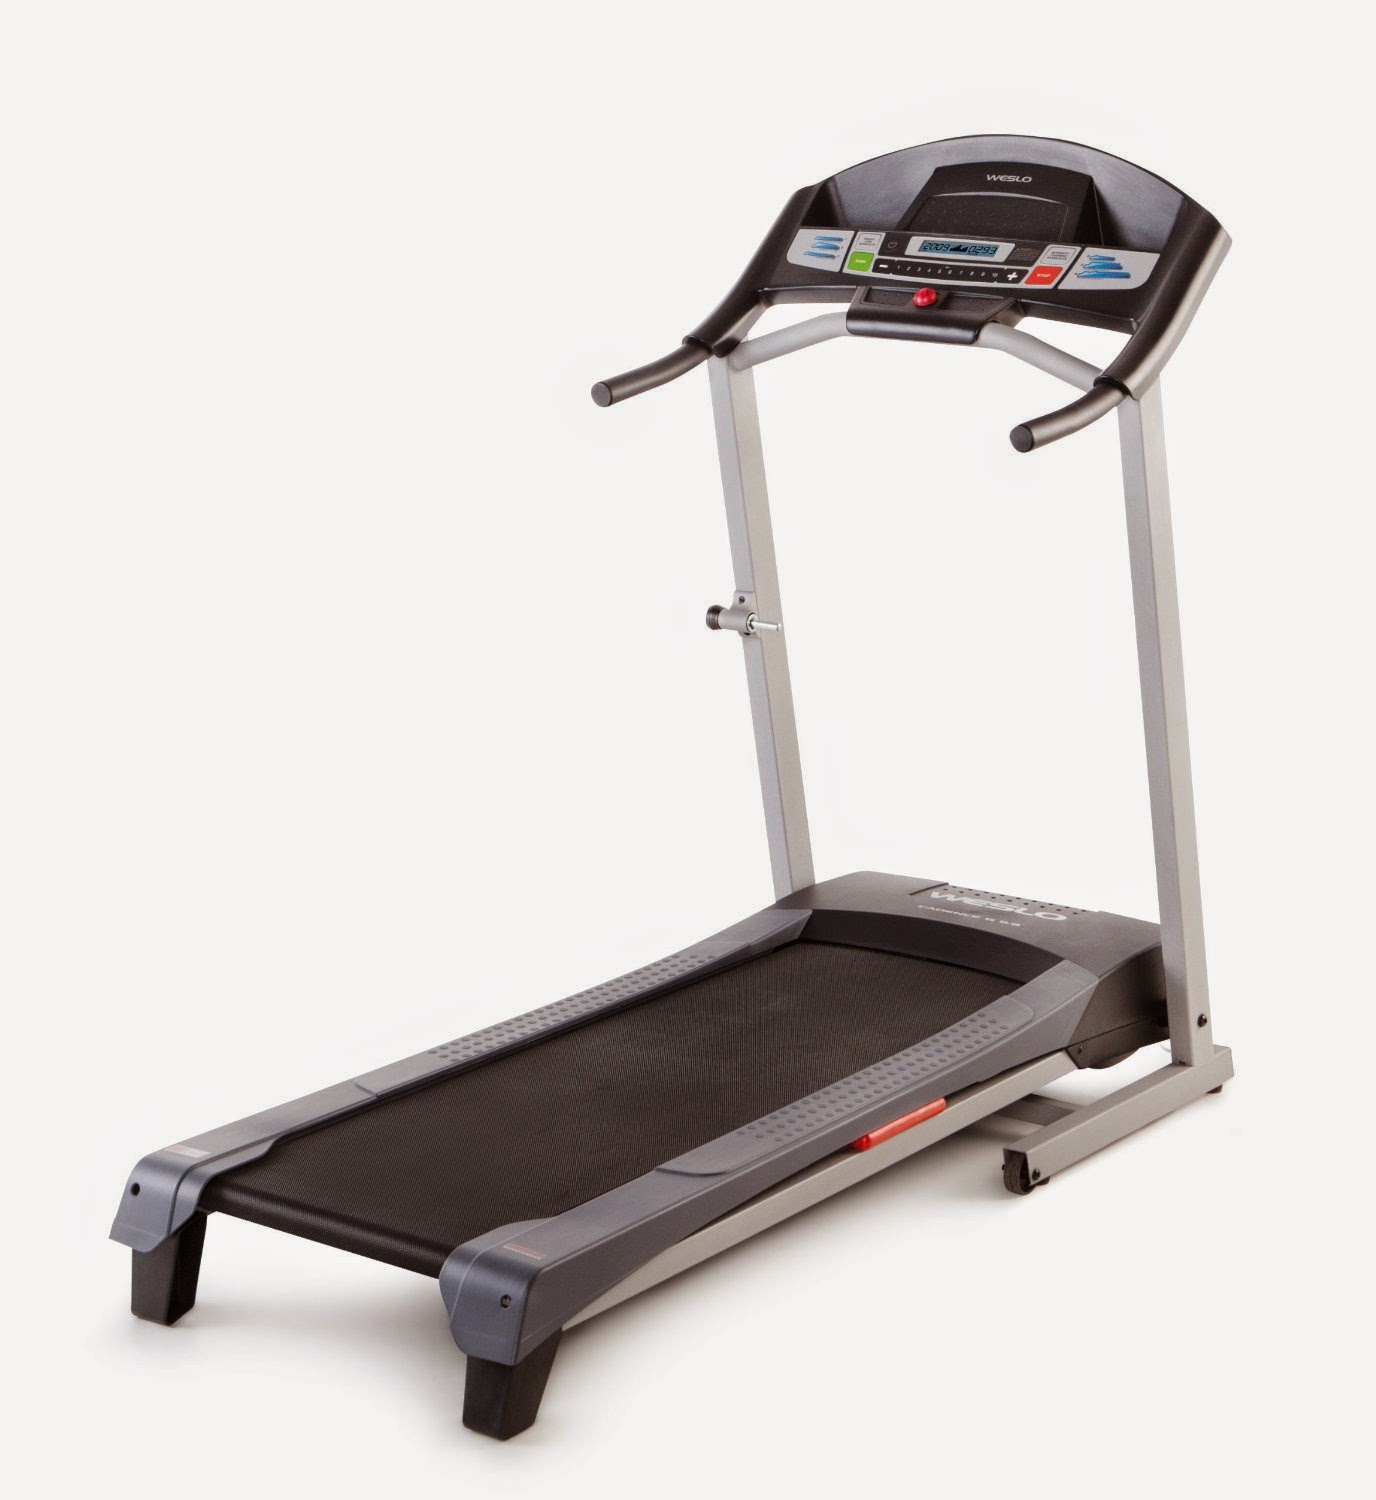 Weslo Cadence G 5.9 Treadmill, picture, image, one of the best top 3 treadmills under $300, review features & specifications, buy at discounted low price, compare with Confidence GTR Power Pro Motorized Electric Treadmill